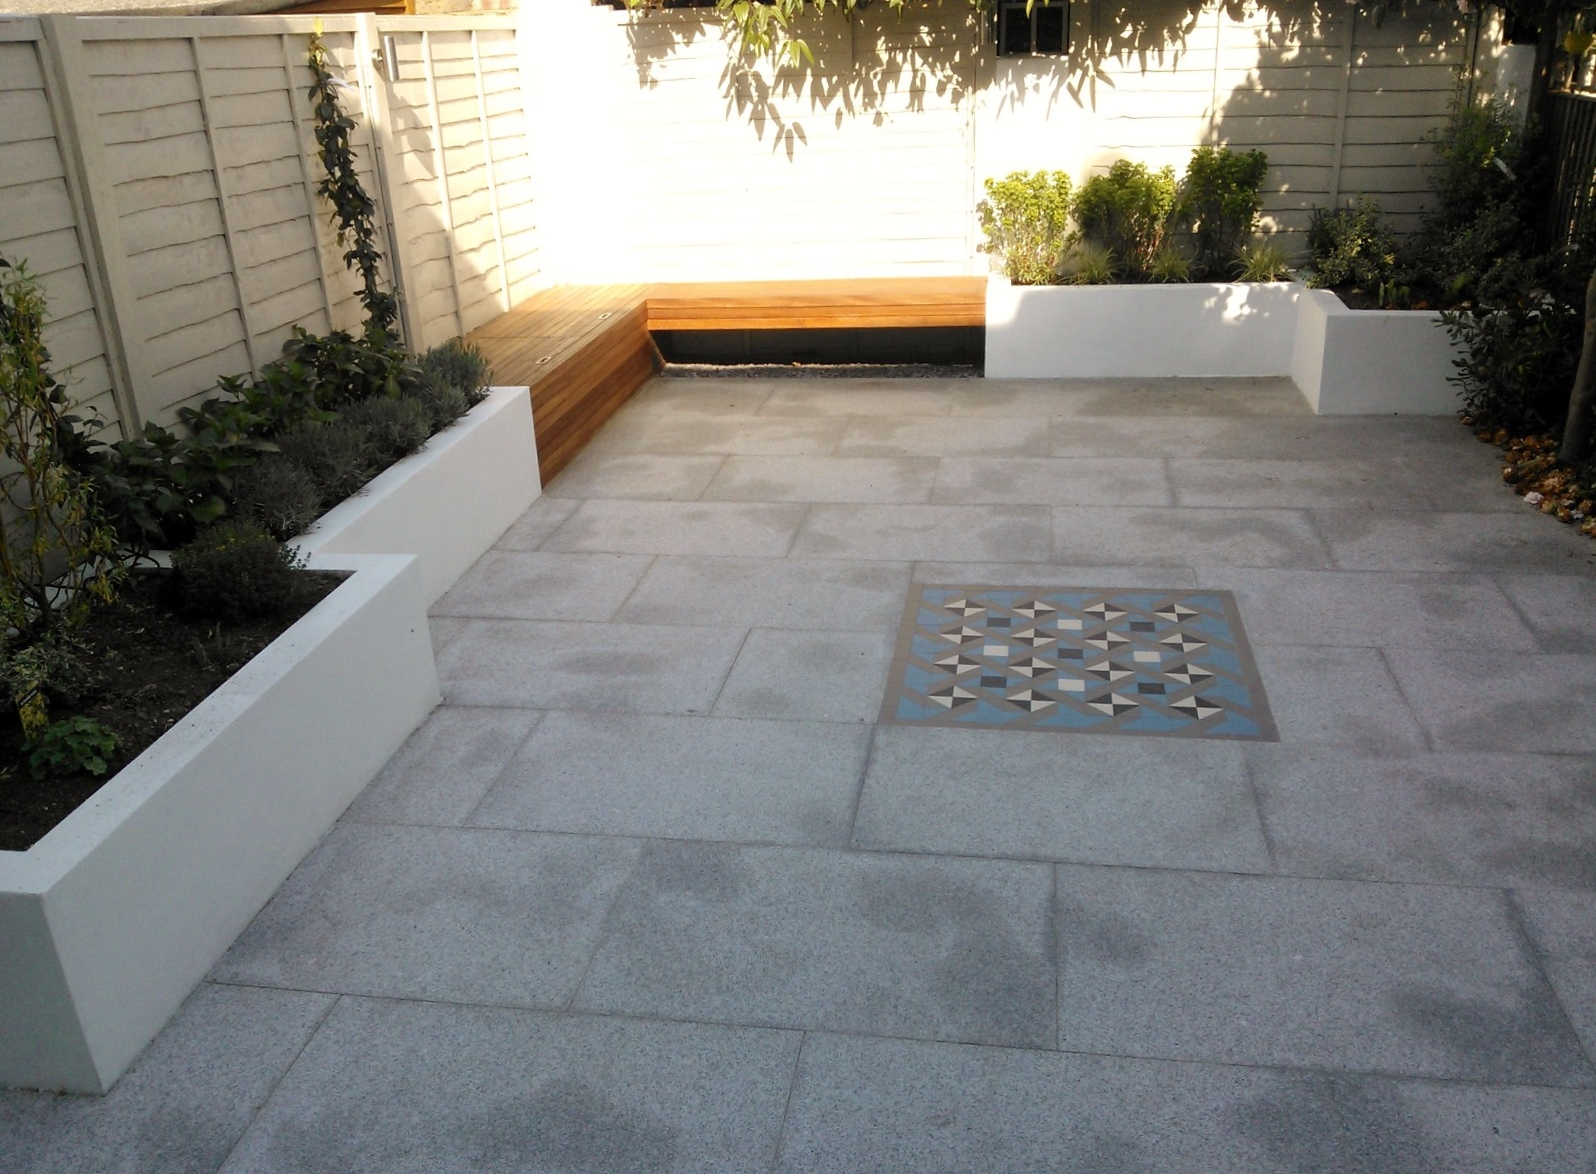 Modern London Garden Design Painted Fence Granite Paving Hardwood Bench Raised Painted beds architectural Planting West London (3)